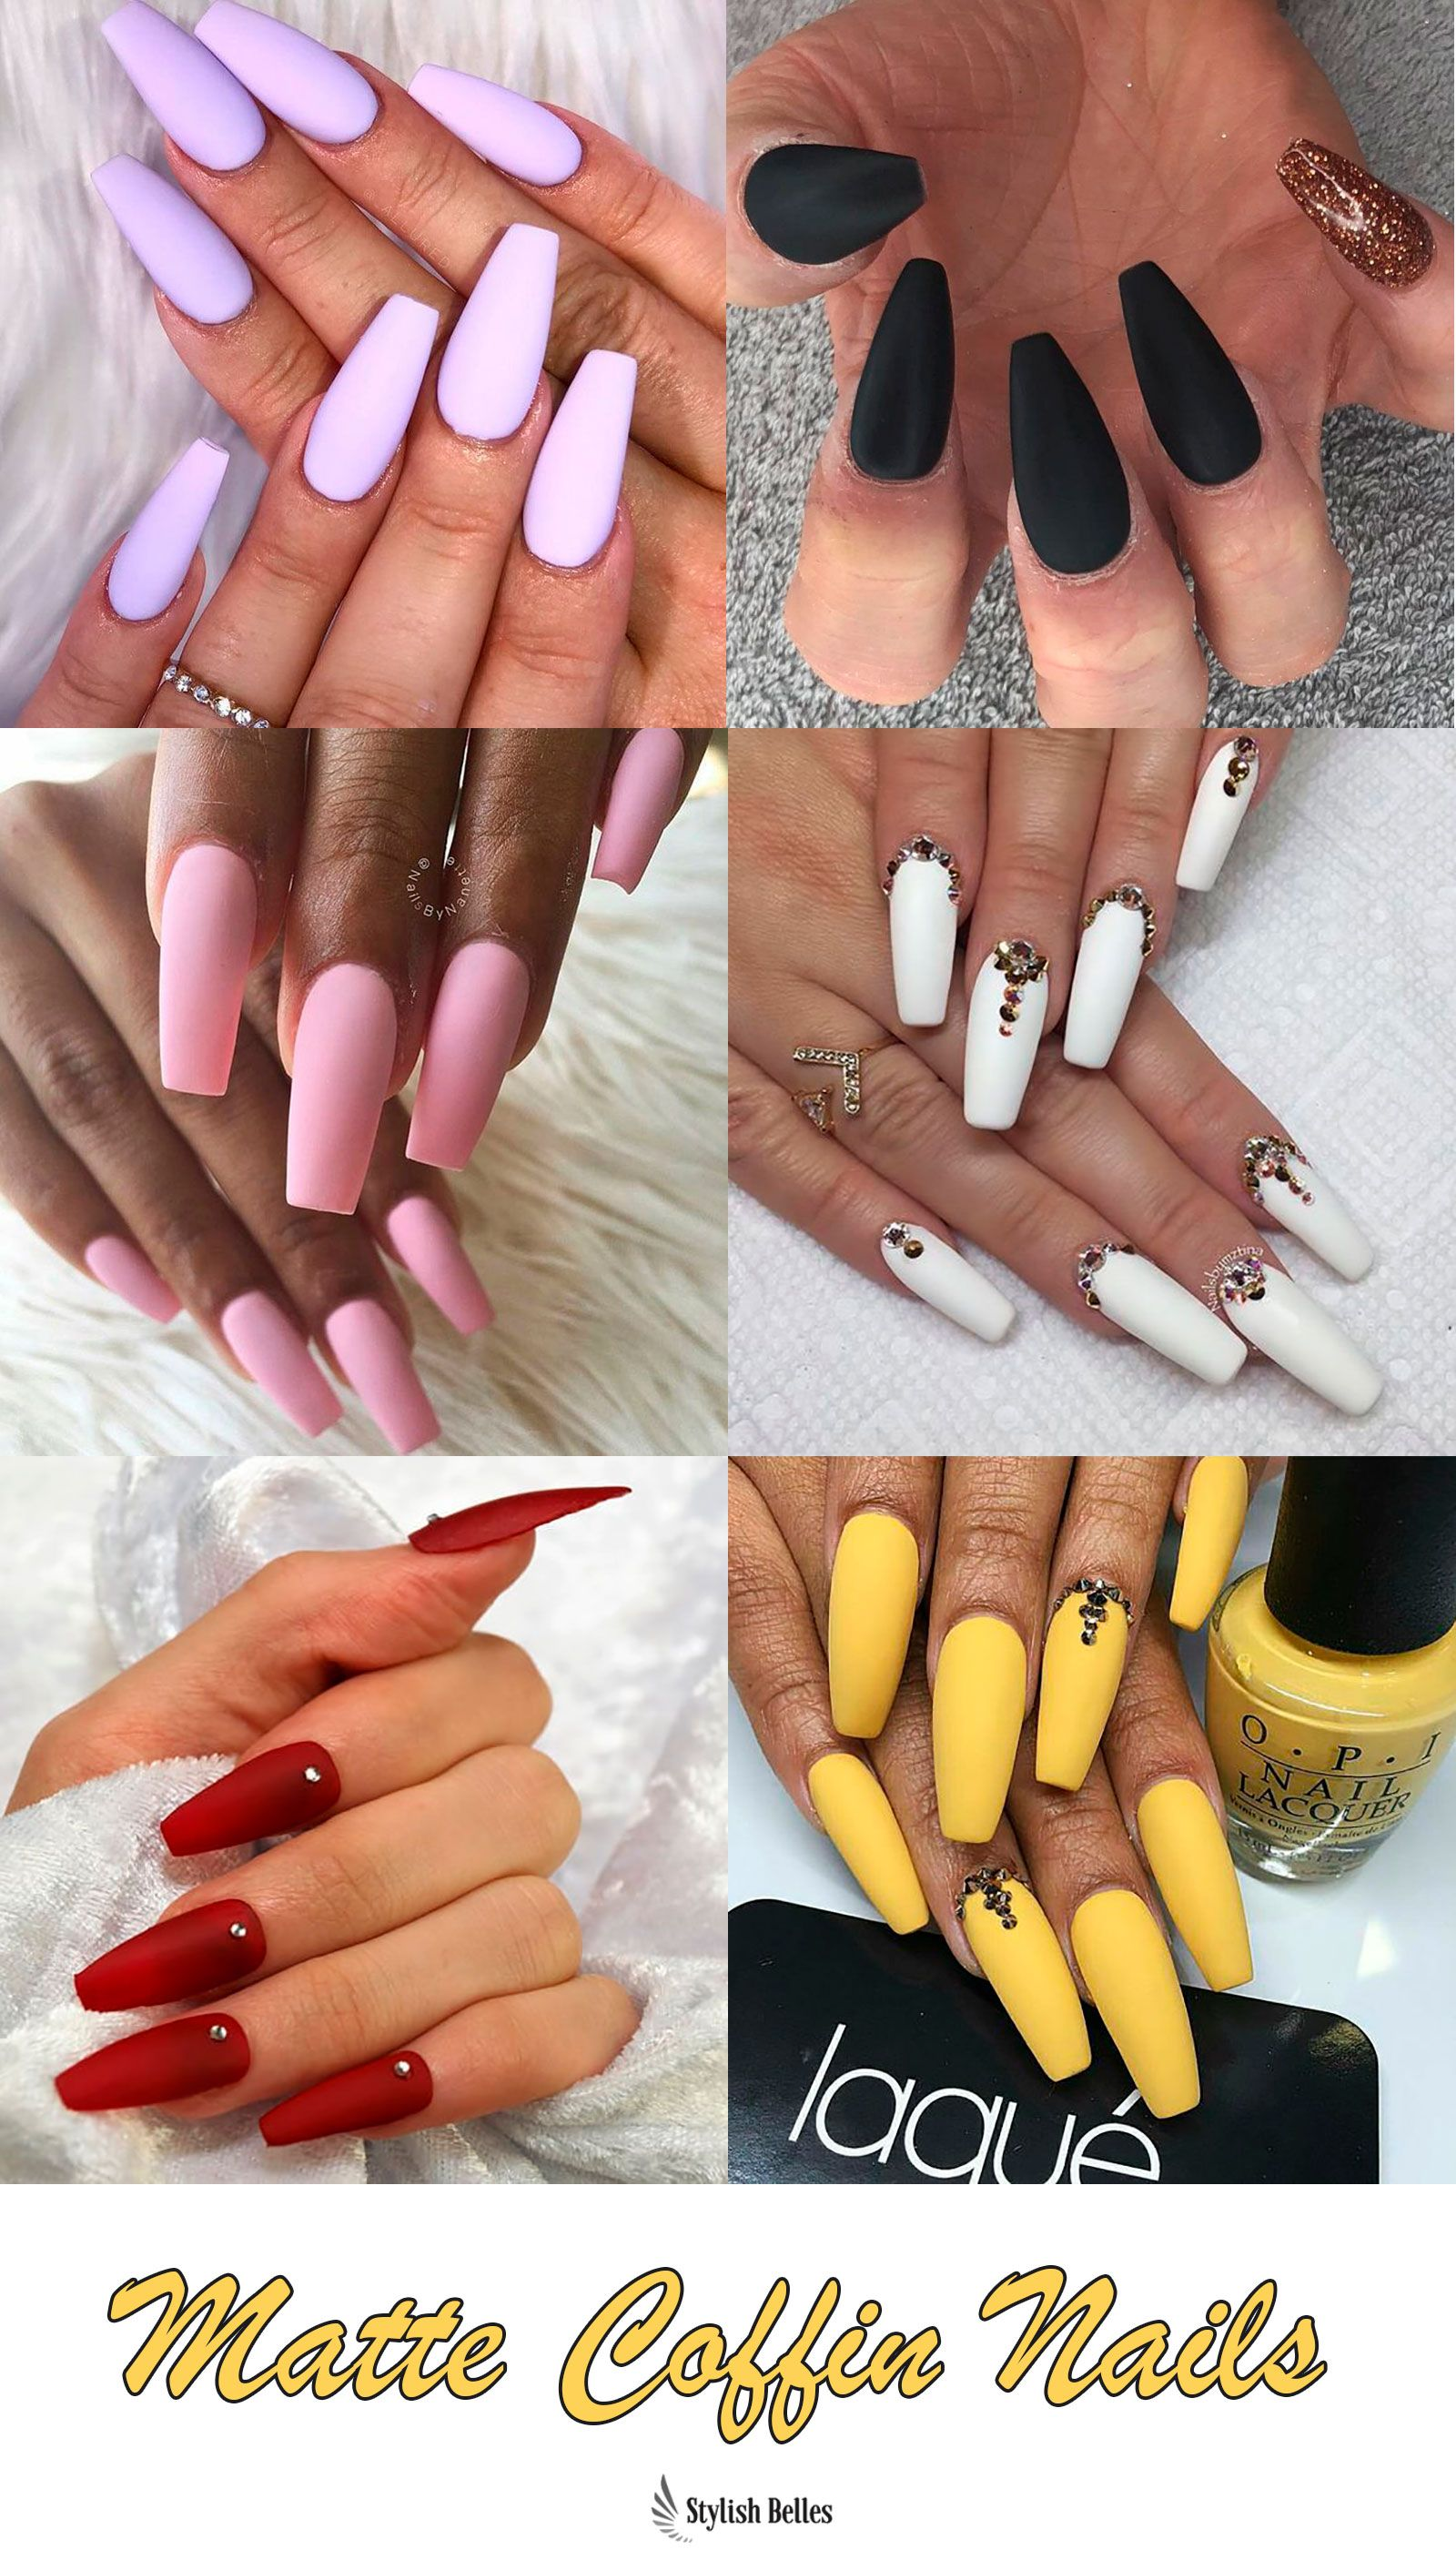 20 Great Ideas How To Make Acrylic Nails By Yourself Nailart Nailideas Grey Acrylic Nails Best Acrylic Nails Simple Acrylic Nails